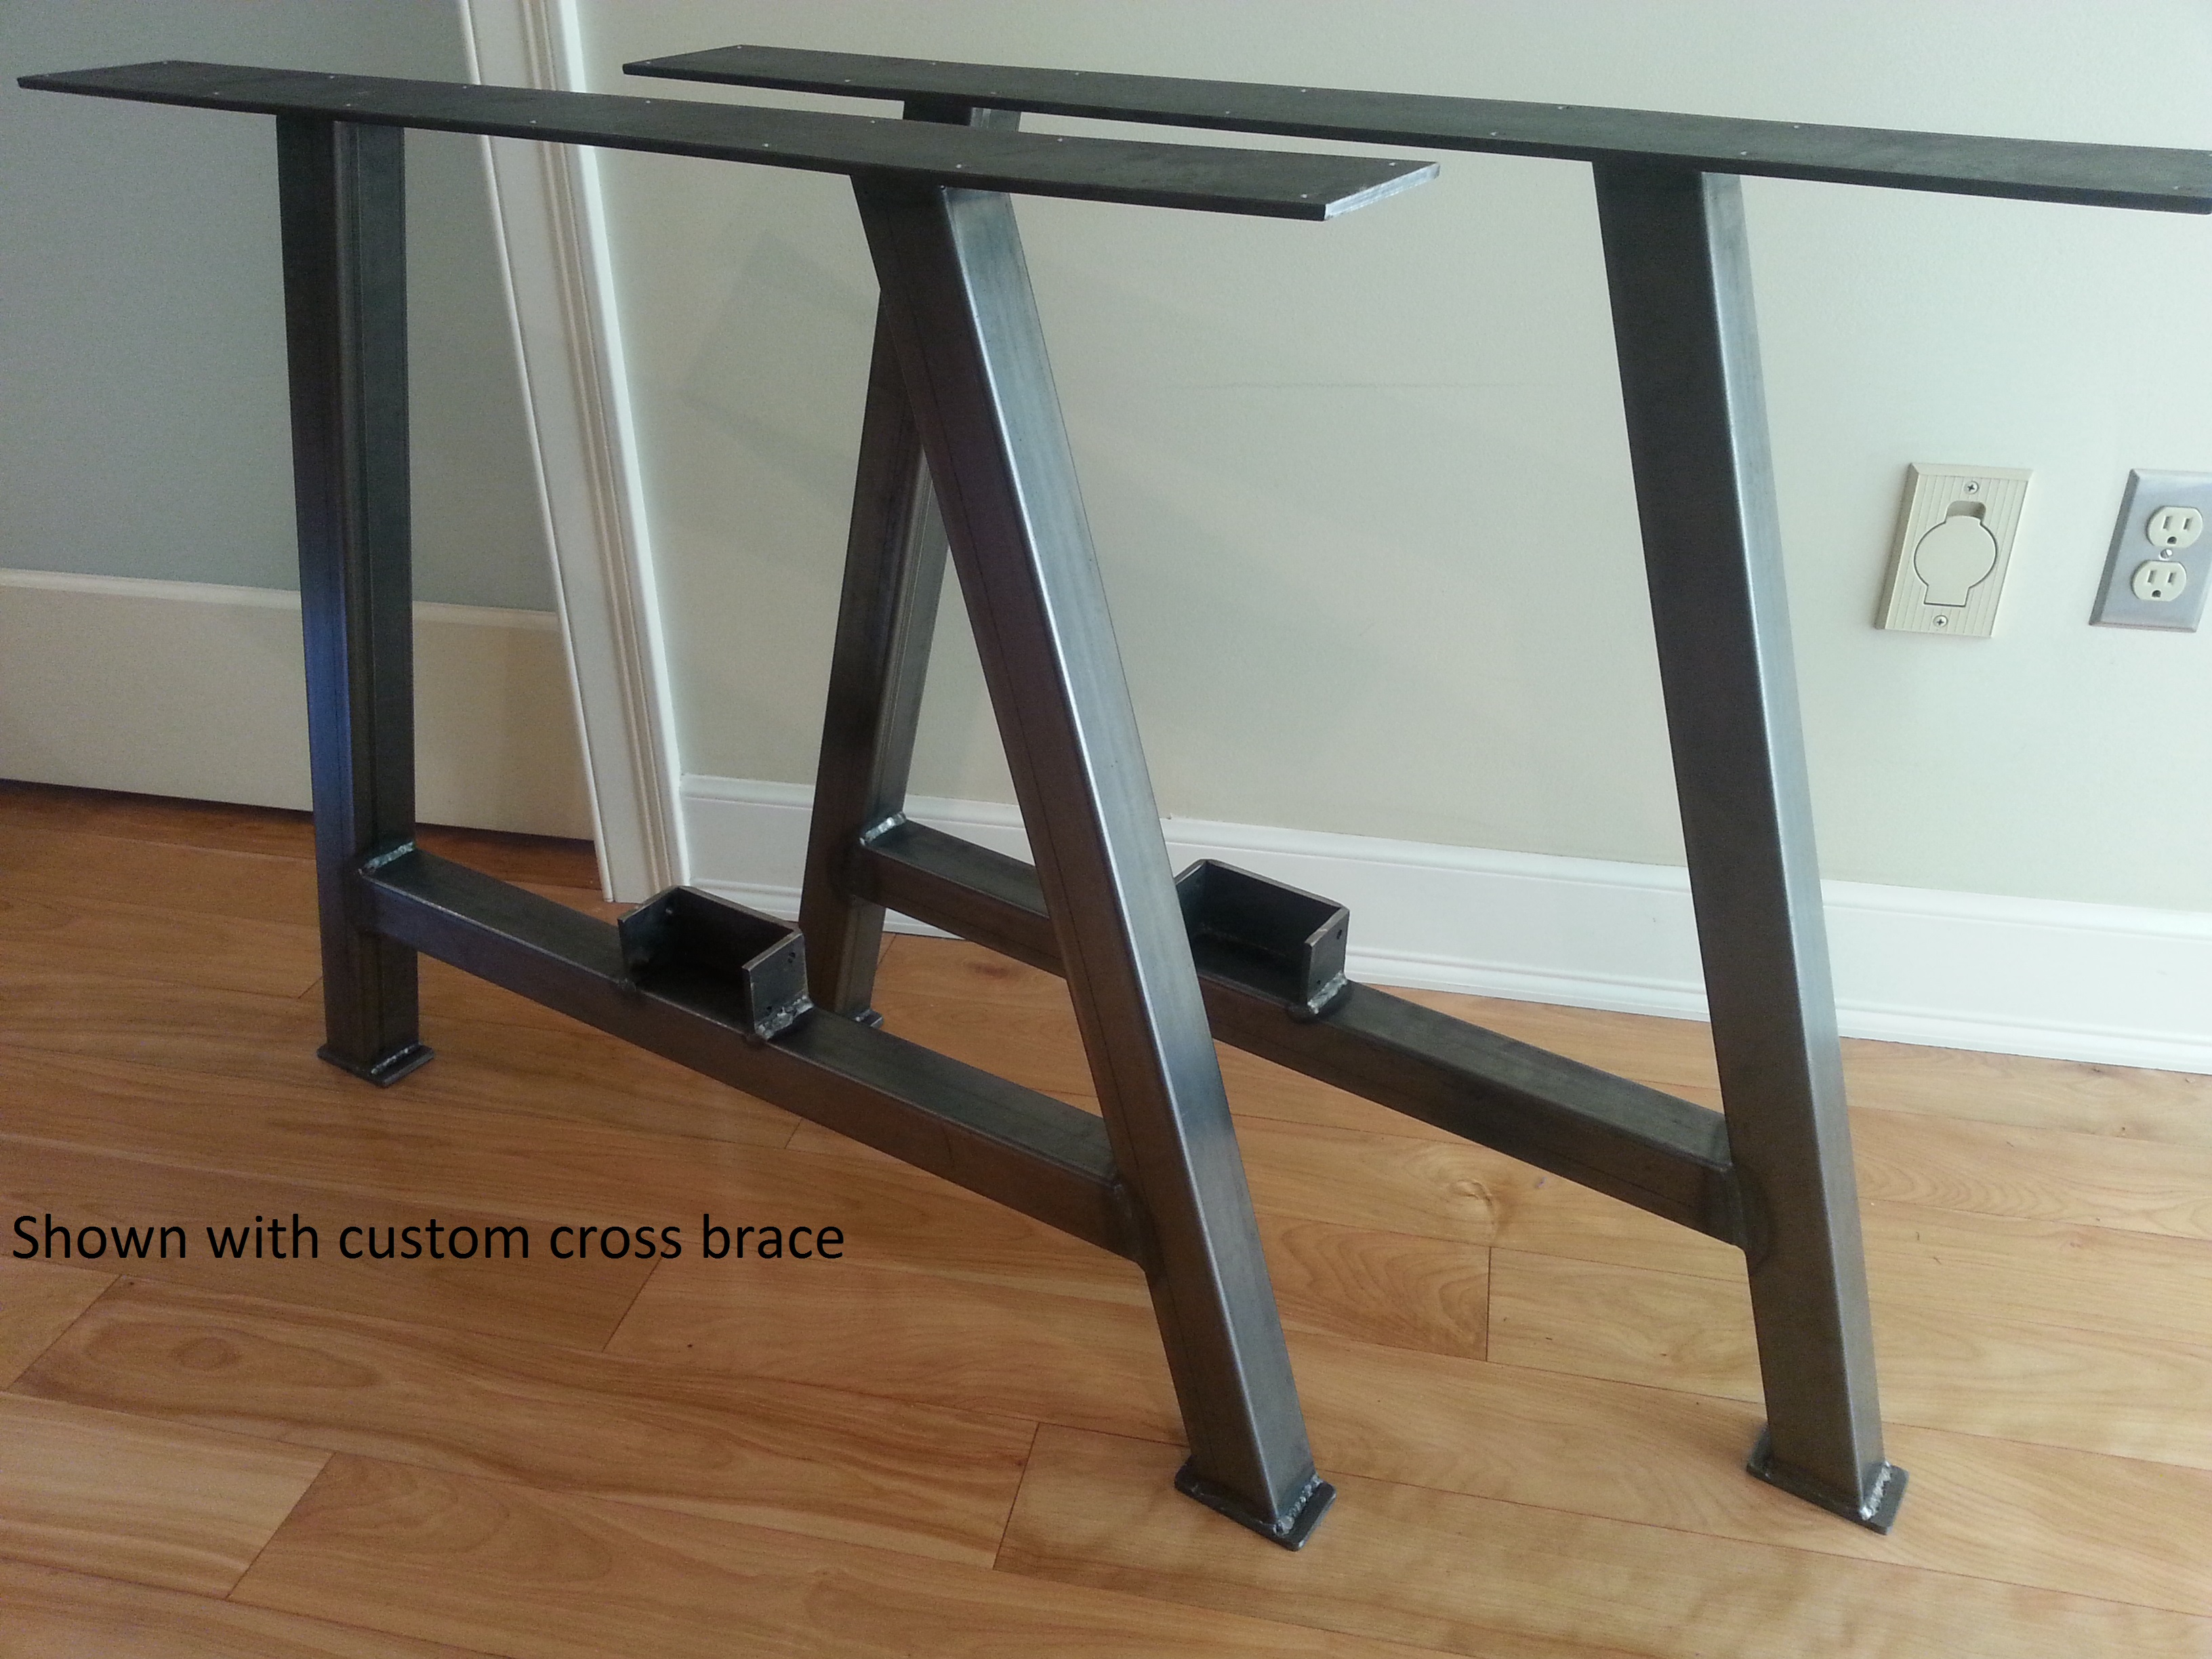 A Frame 2x2 Square Table Leg Set